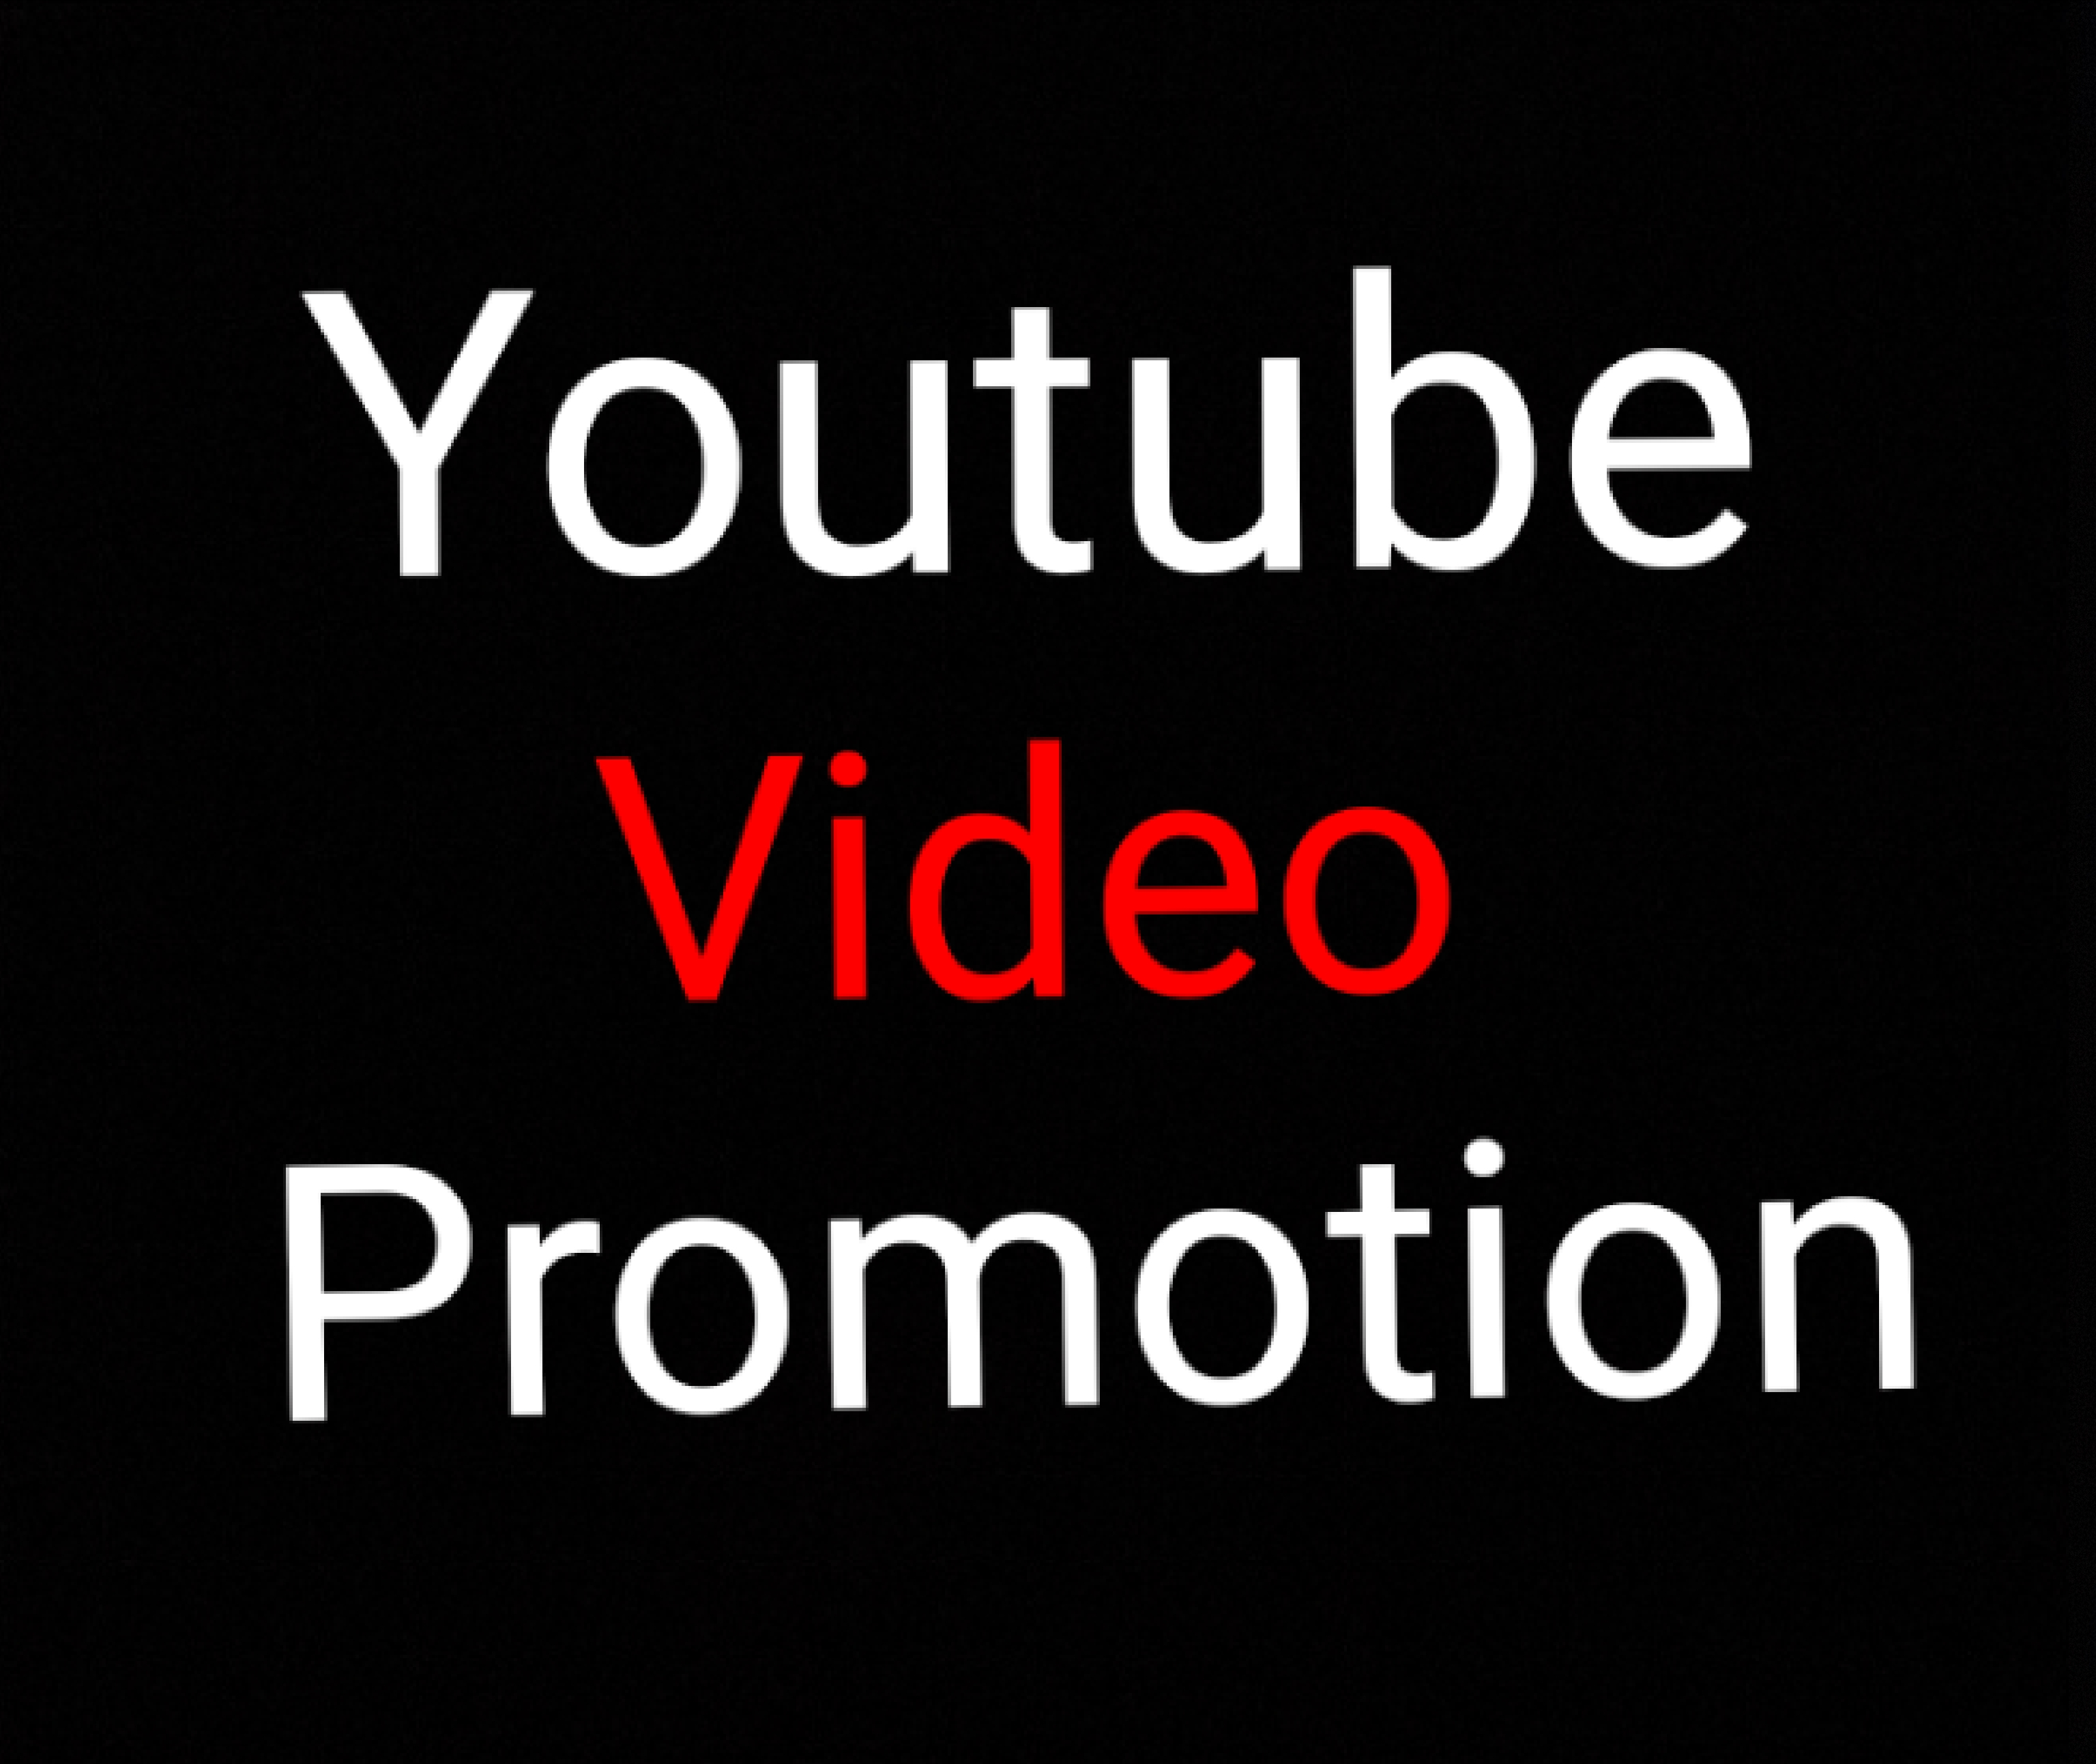 YouTube Video Promotion Manully & Fast Delivery